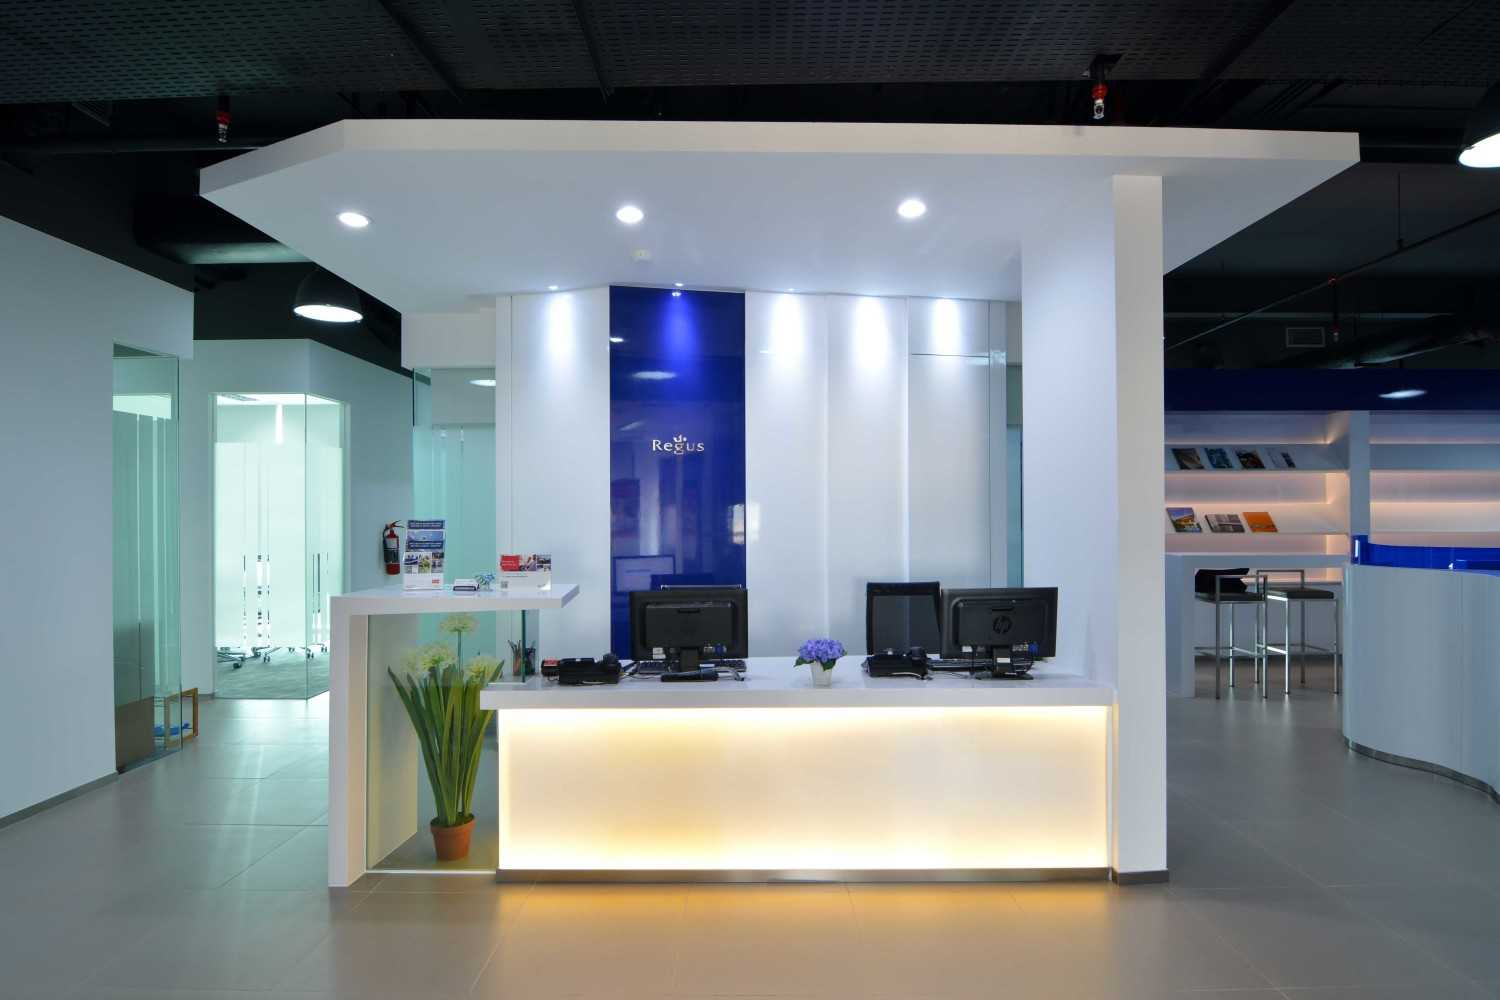 Gurkan Izci Regus Graha Sentra Building Level 4 Graha Sentra Building Level 4 Reception  24750